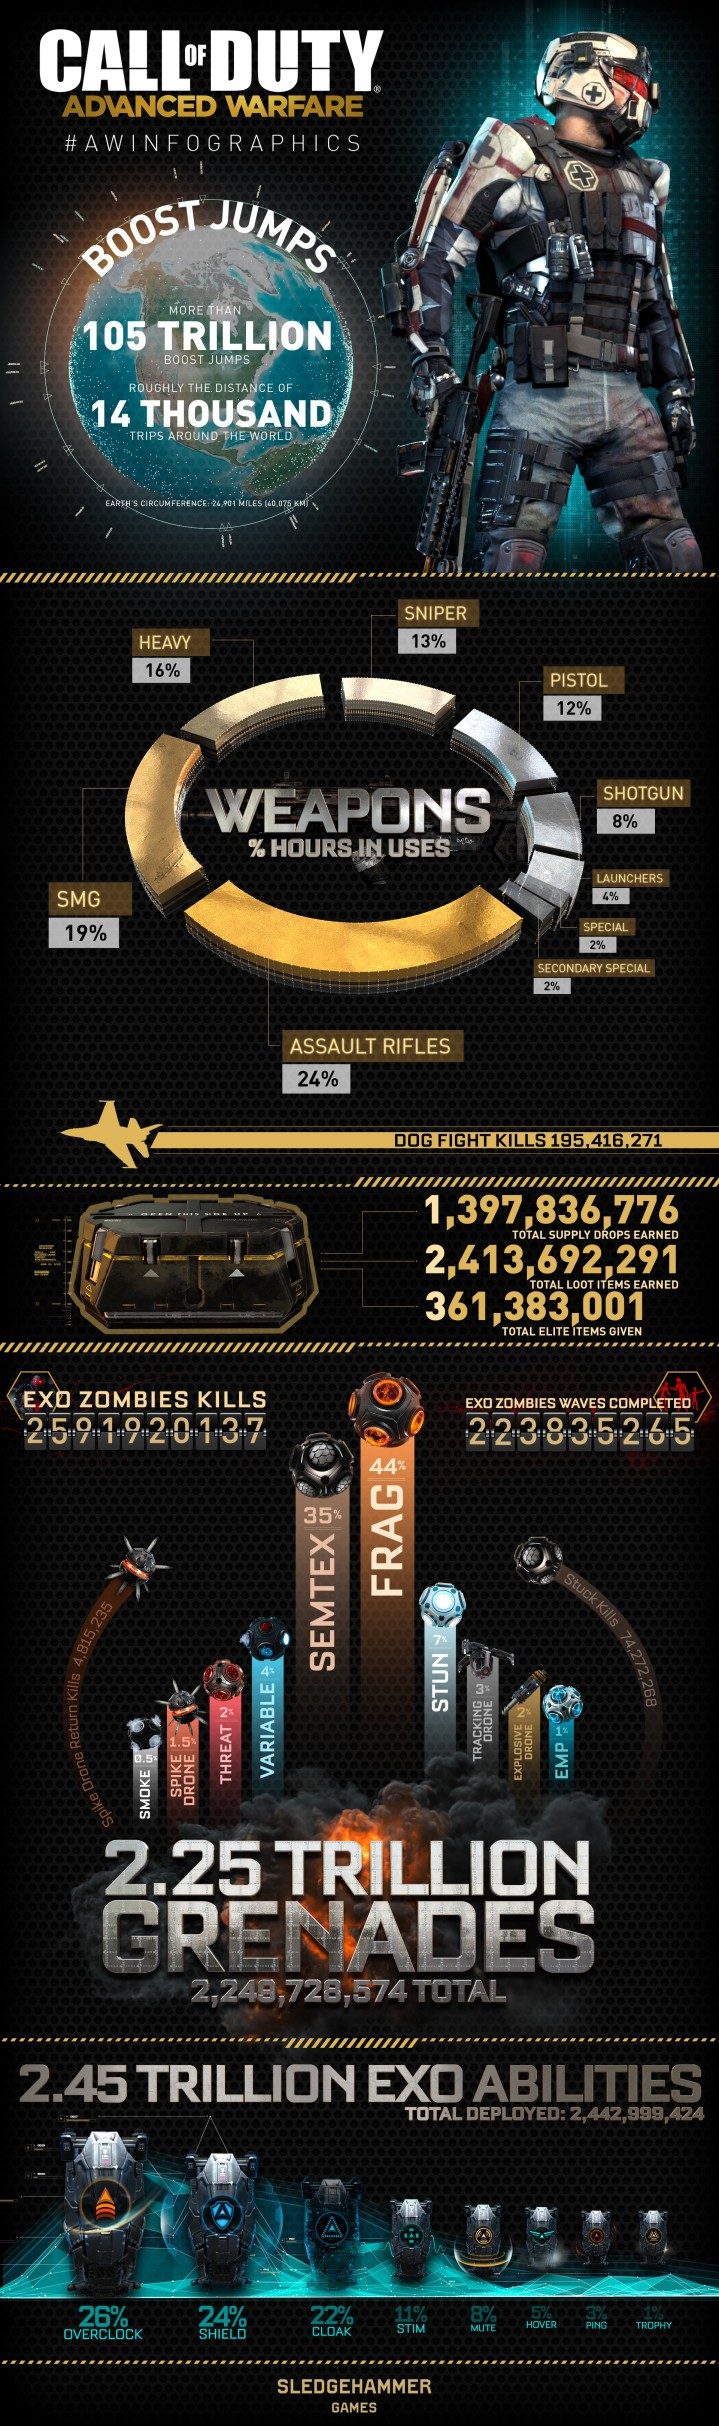 CALL OF DUTY ADVANCED WARFARE INFOGRAPHIC (2)_compressed